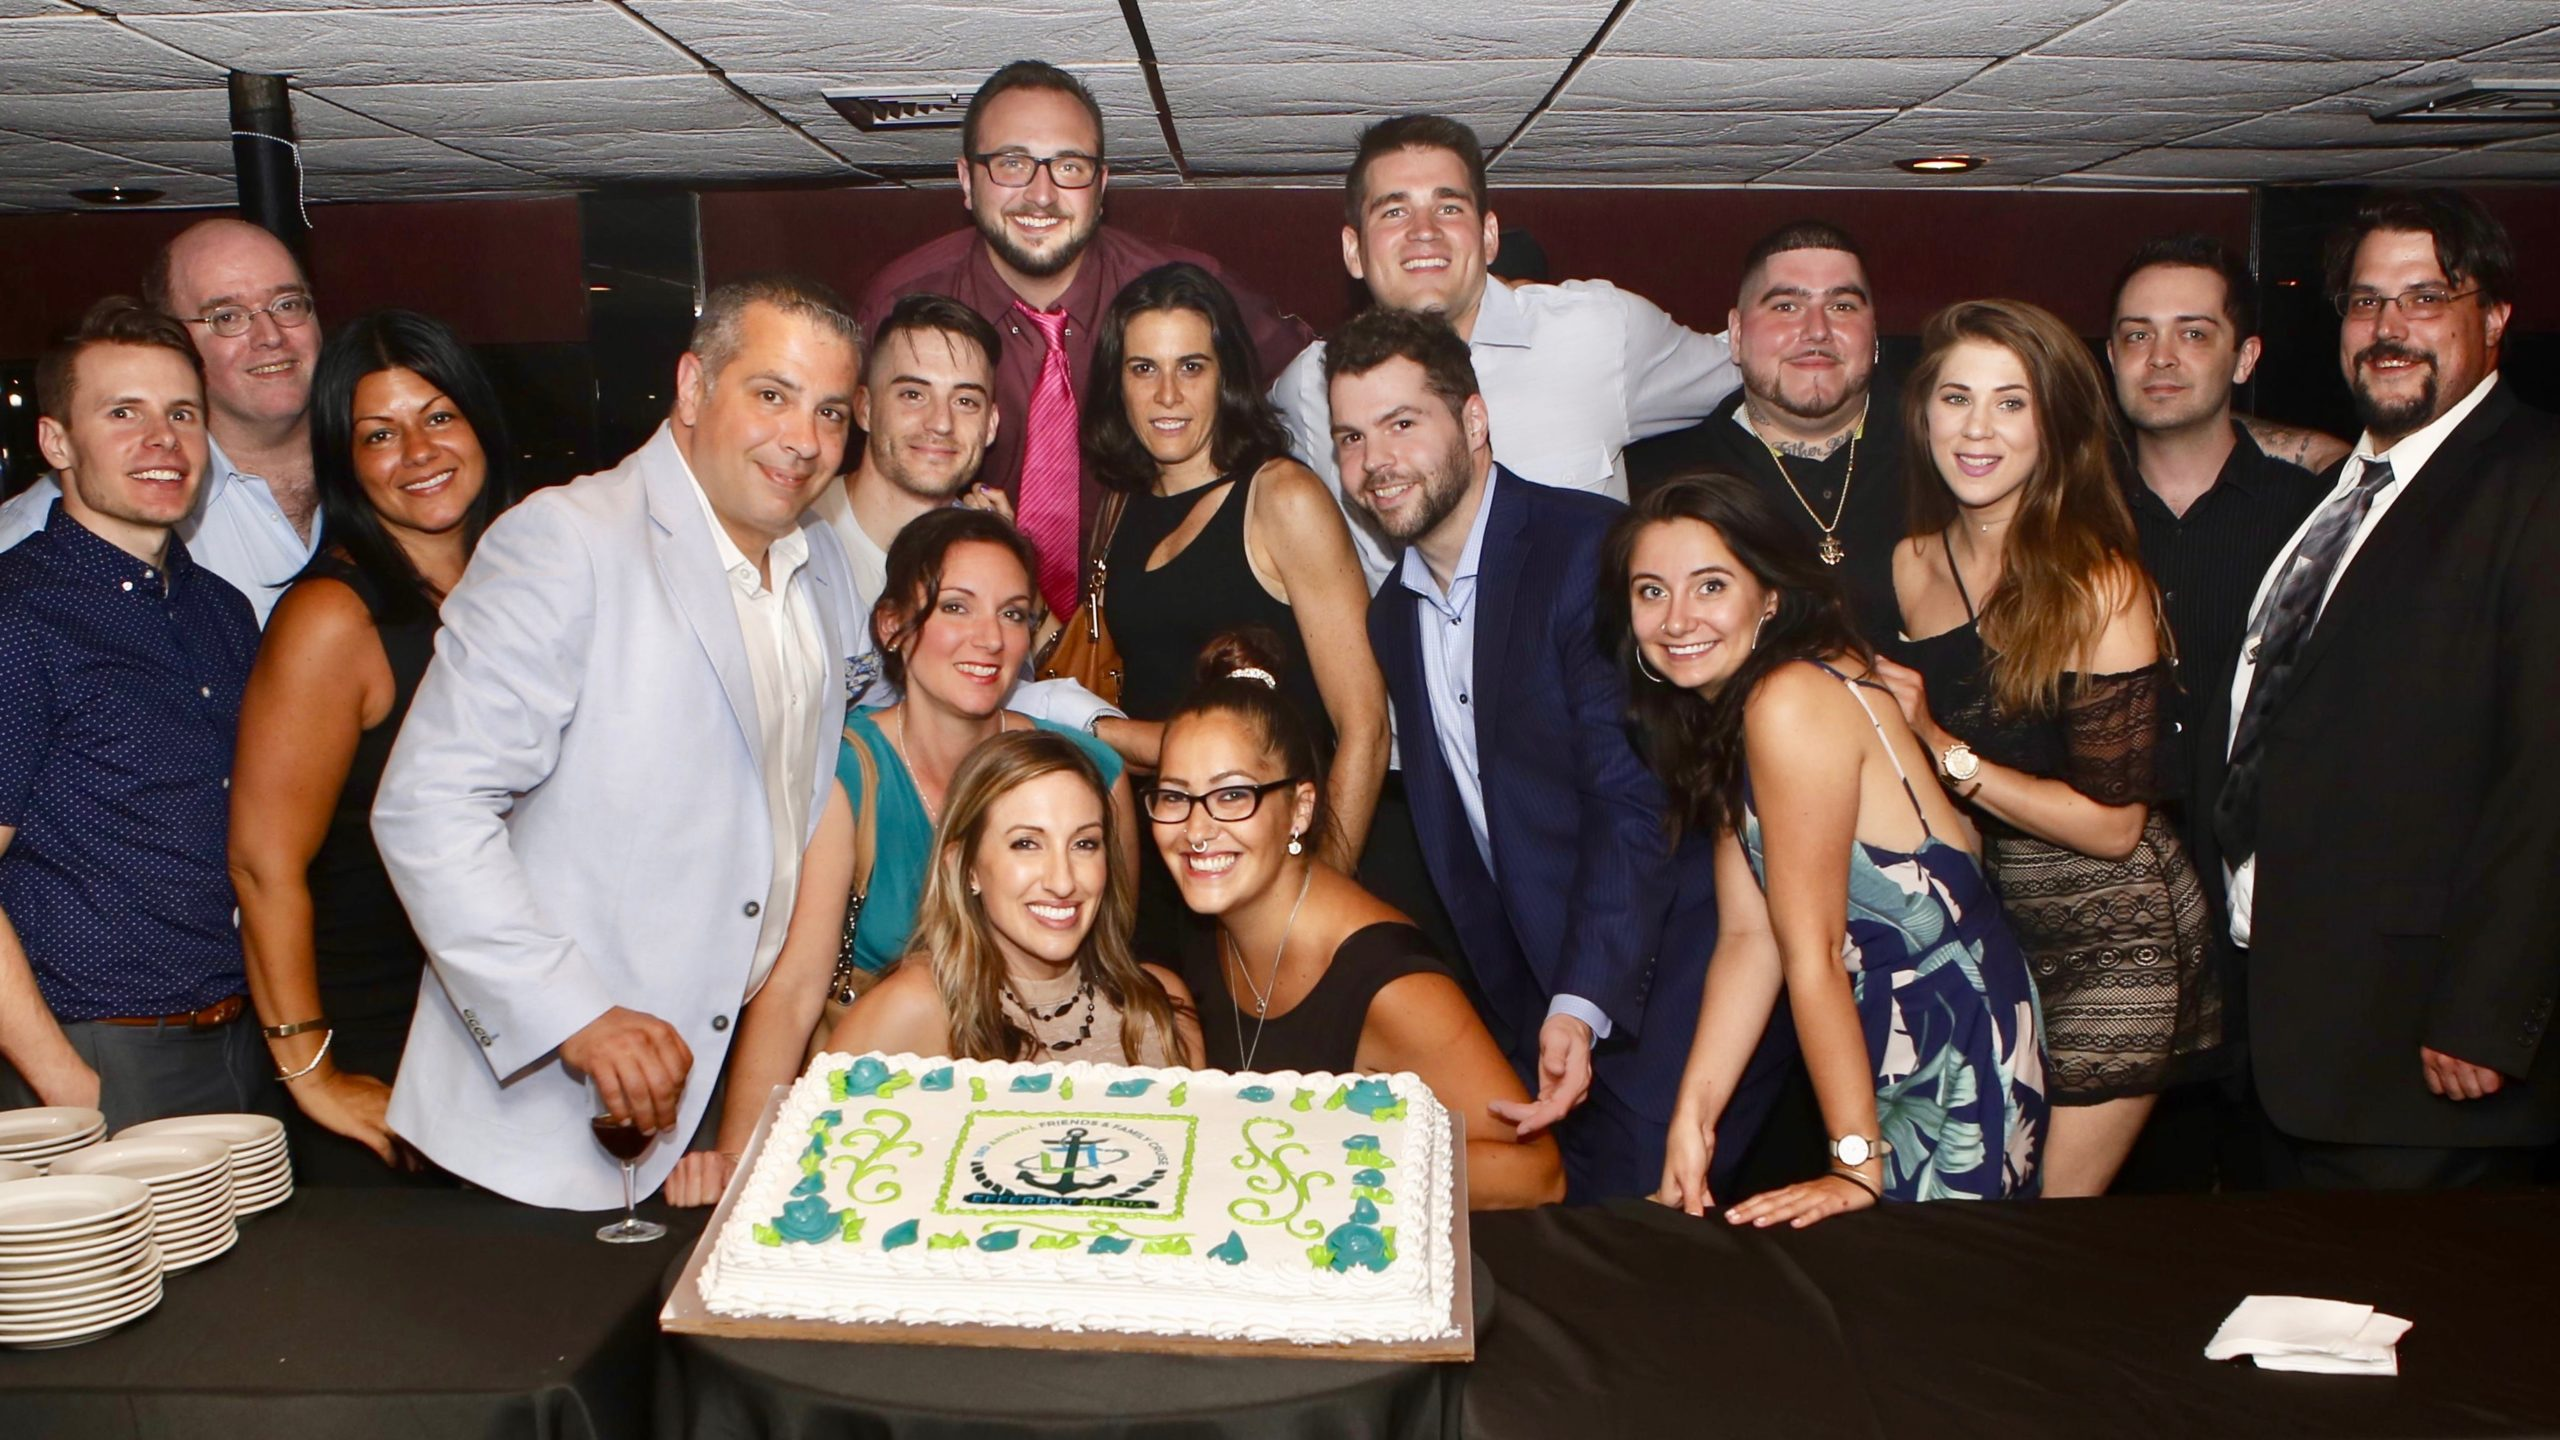 group picture with cake